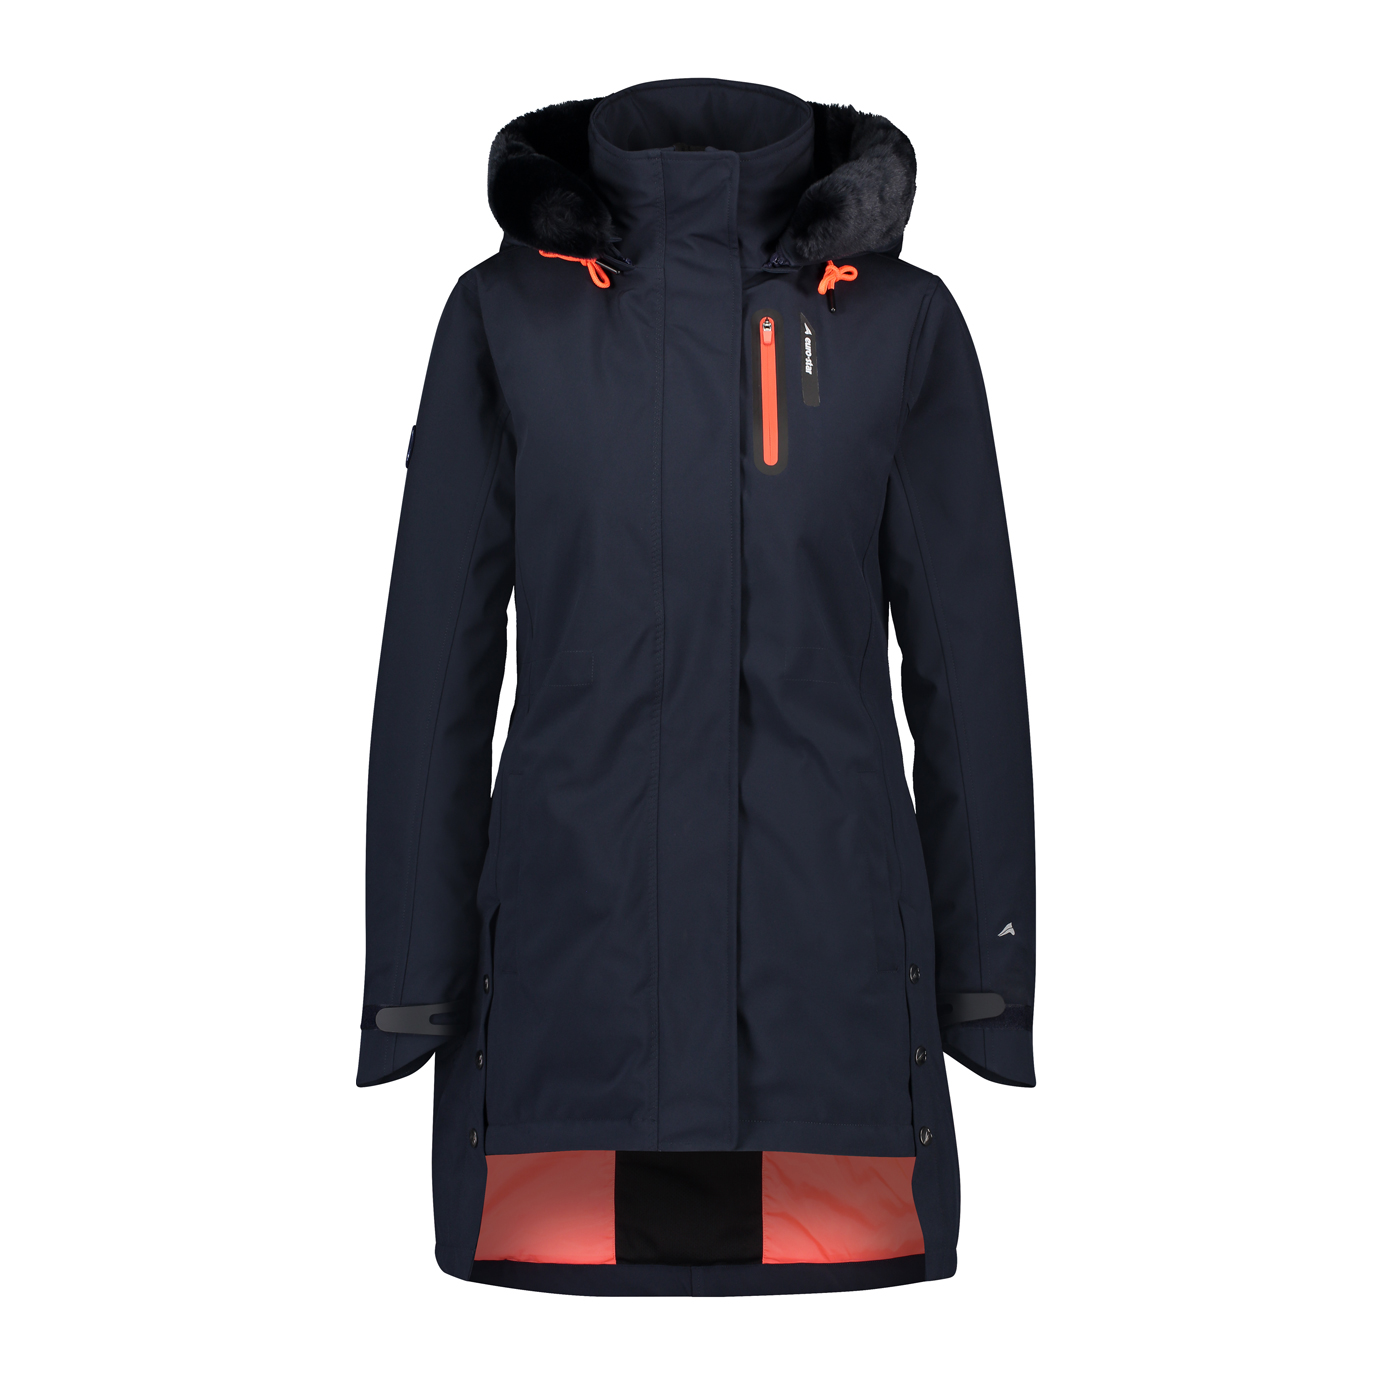 daa6d42b96 Winter Warmers – Beat the cold weather that's coming!